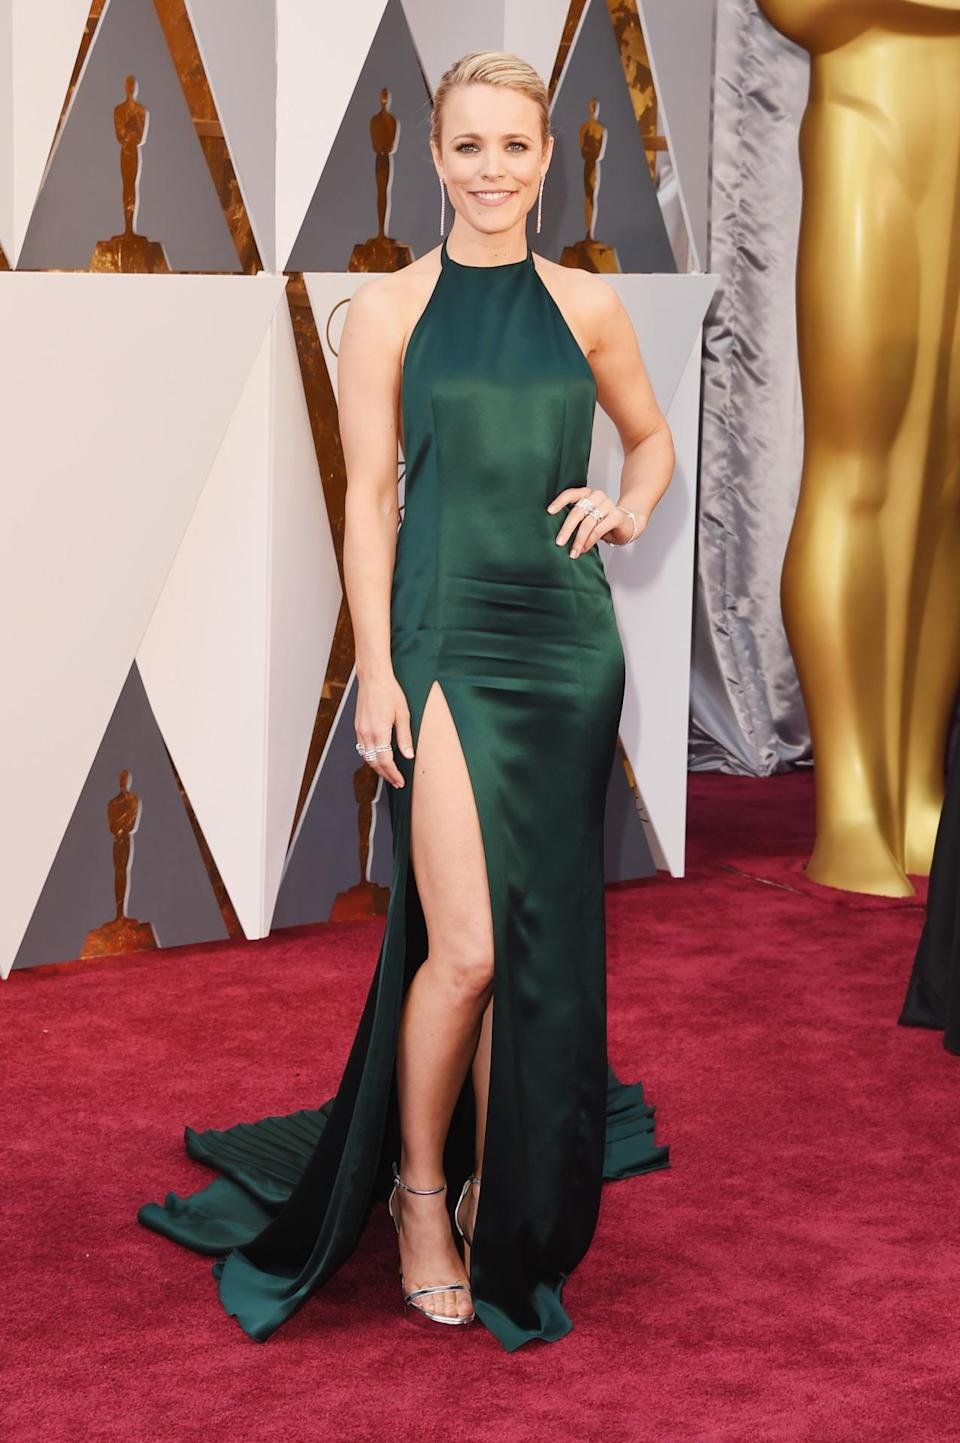 <p>Rachel McAdams has had an epic awards season in the fashion department, from a pretty Prada minidress moment to an amazing Elie Saab gown at the Golden Globes. But she went out with a bang in an emerald green August Getty silk piece with a high neckline and super high leg slit. <i><i>(Photo: Getty Images)</i></i></p>